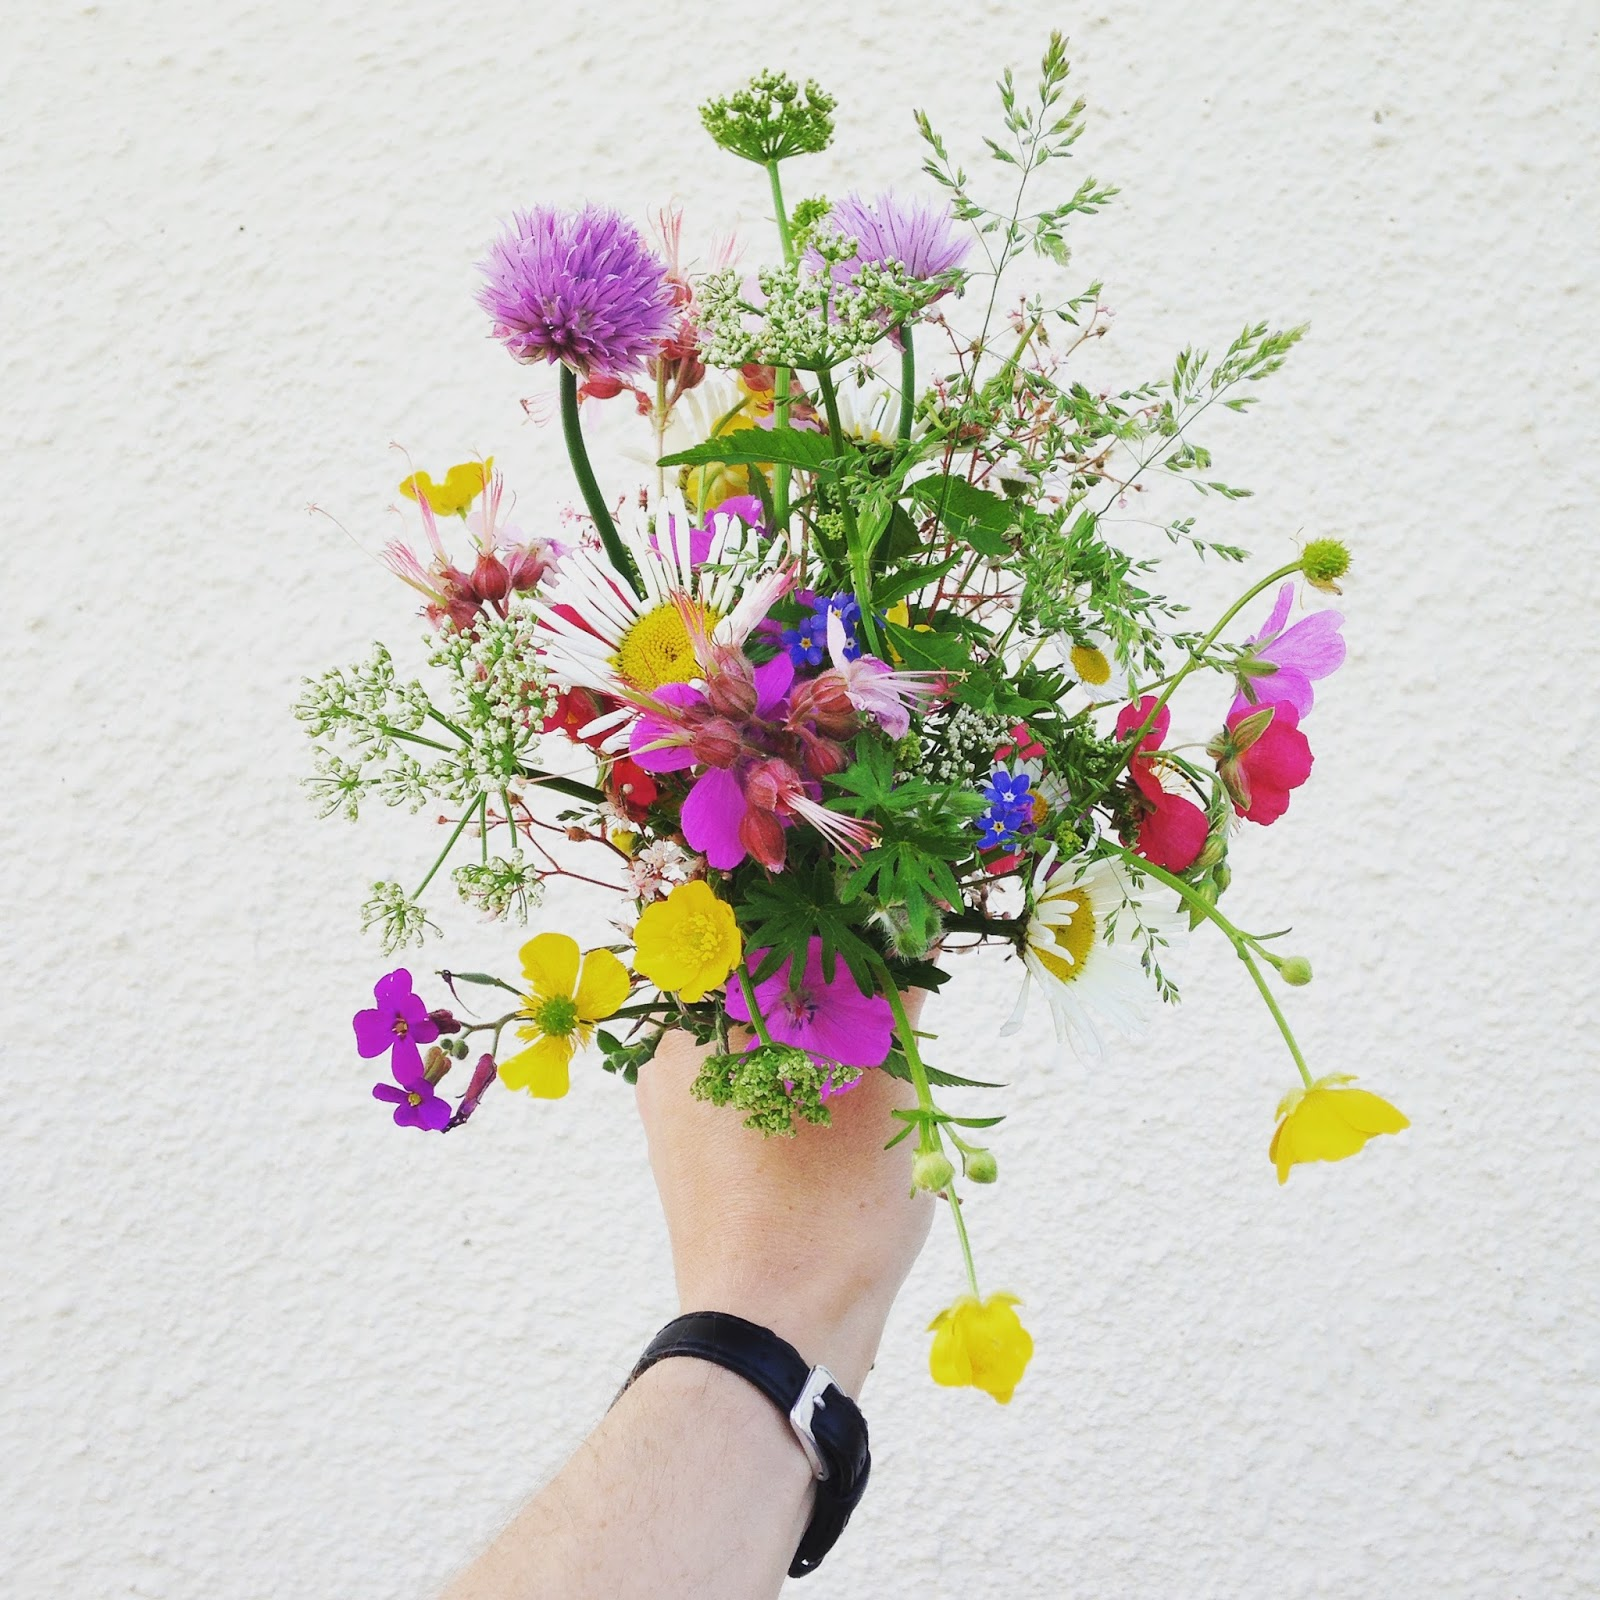 freshly picked flowers